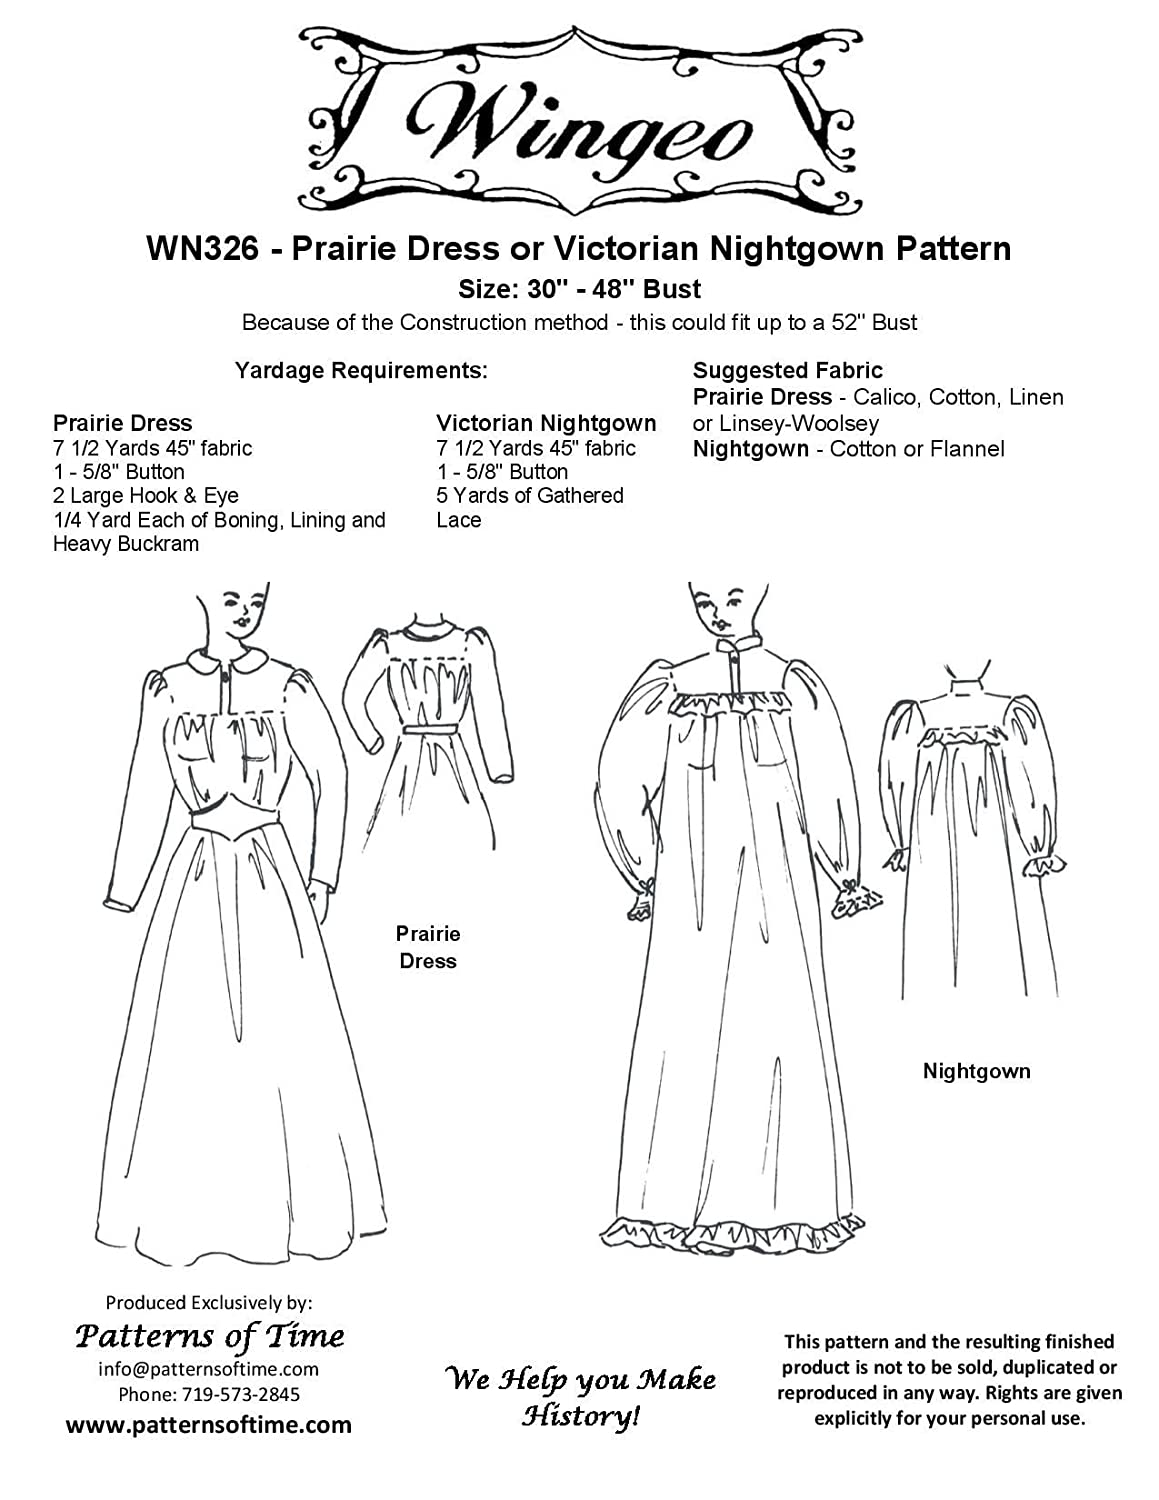 Nightgown Pattern Interesting Design Inspiration